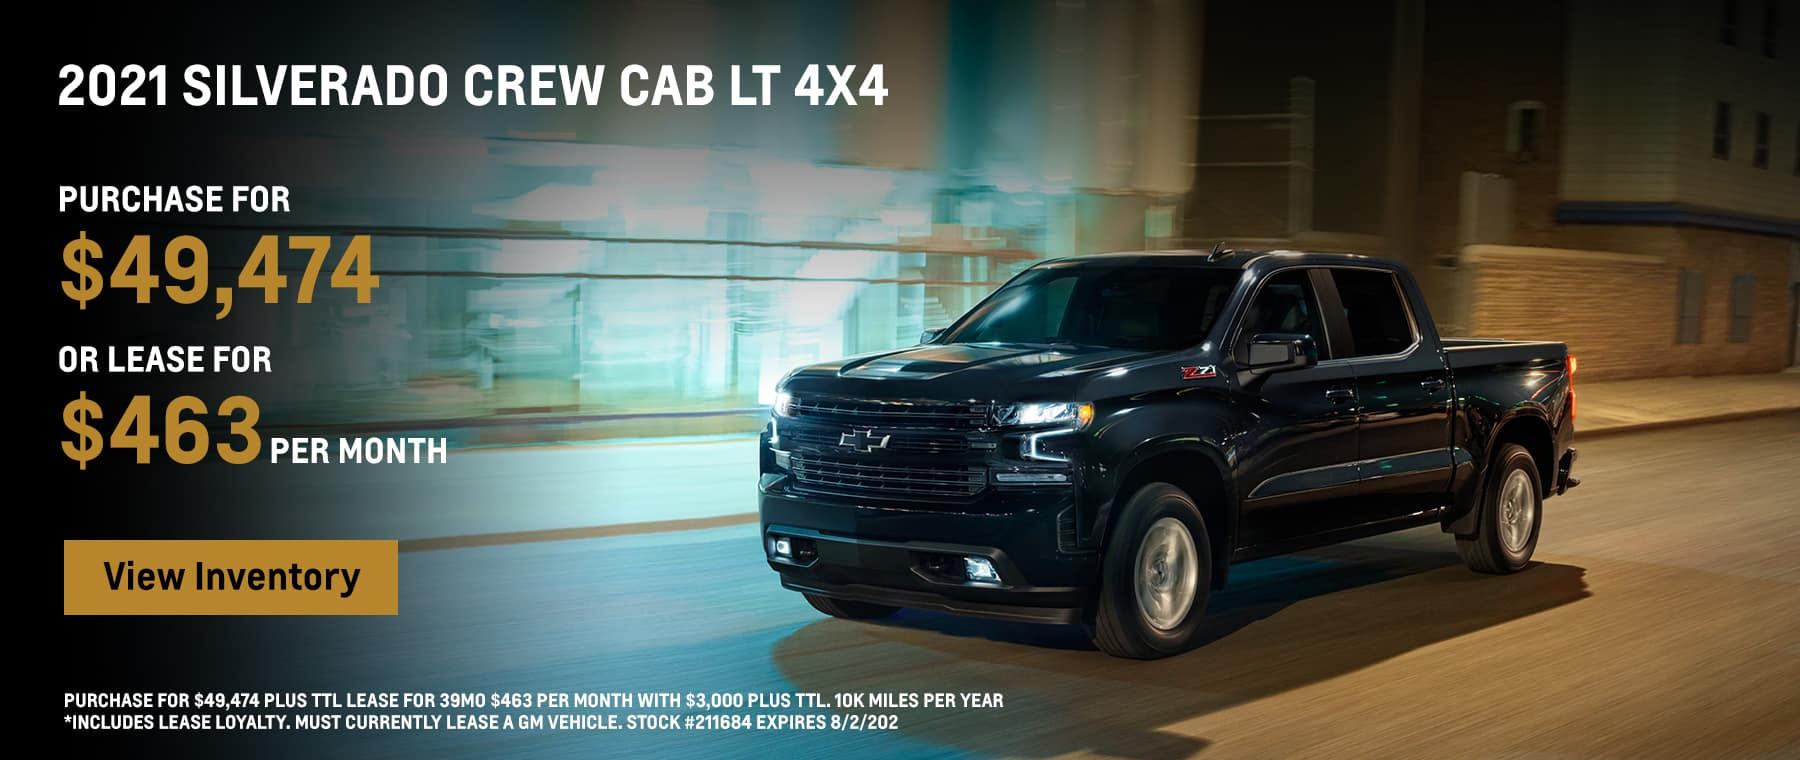 2021 Silverado Crew Cab LT 4x4 Purchase for $49,474 or Lease for $463 per month